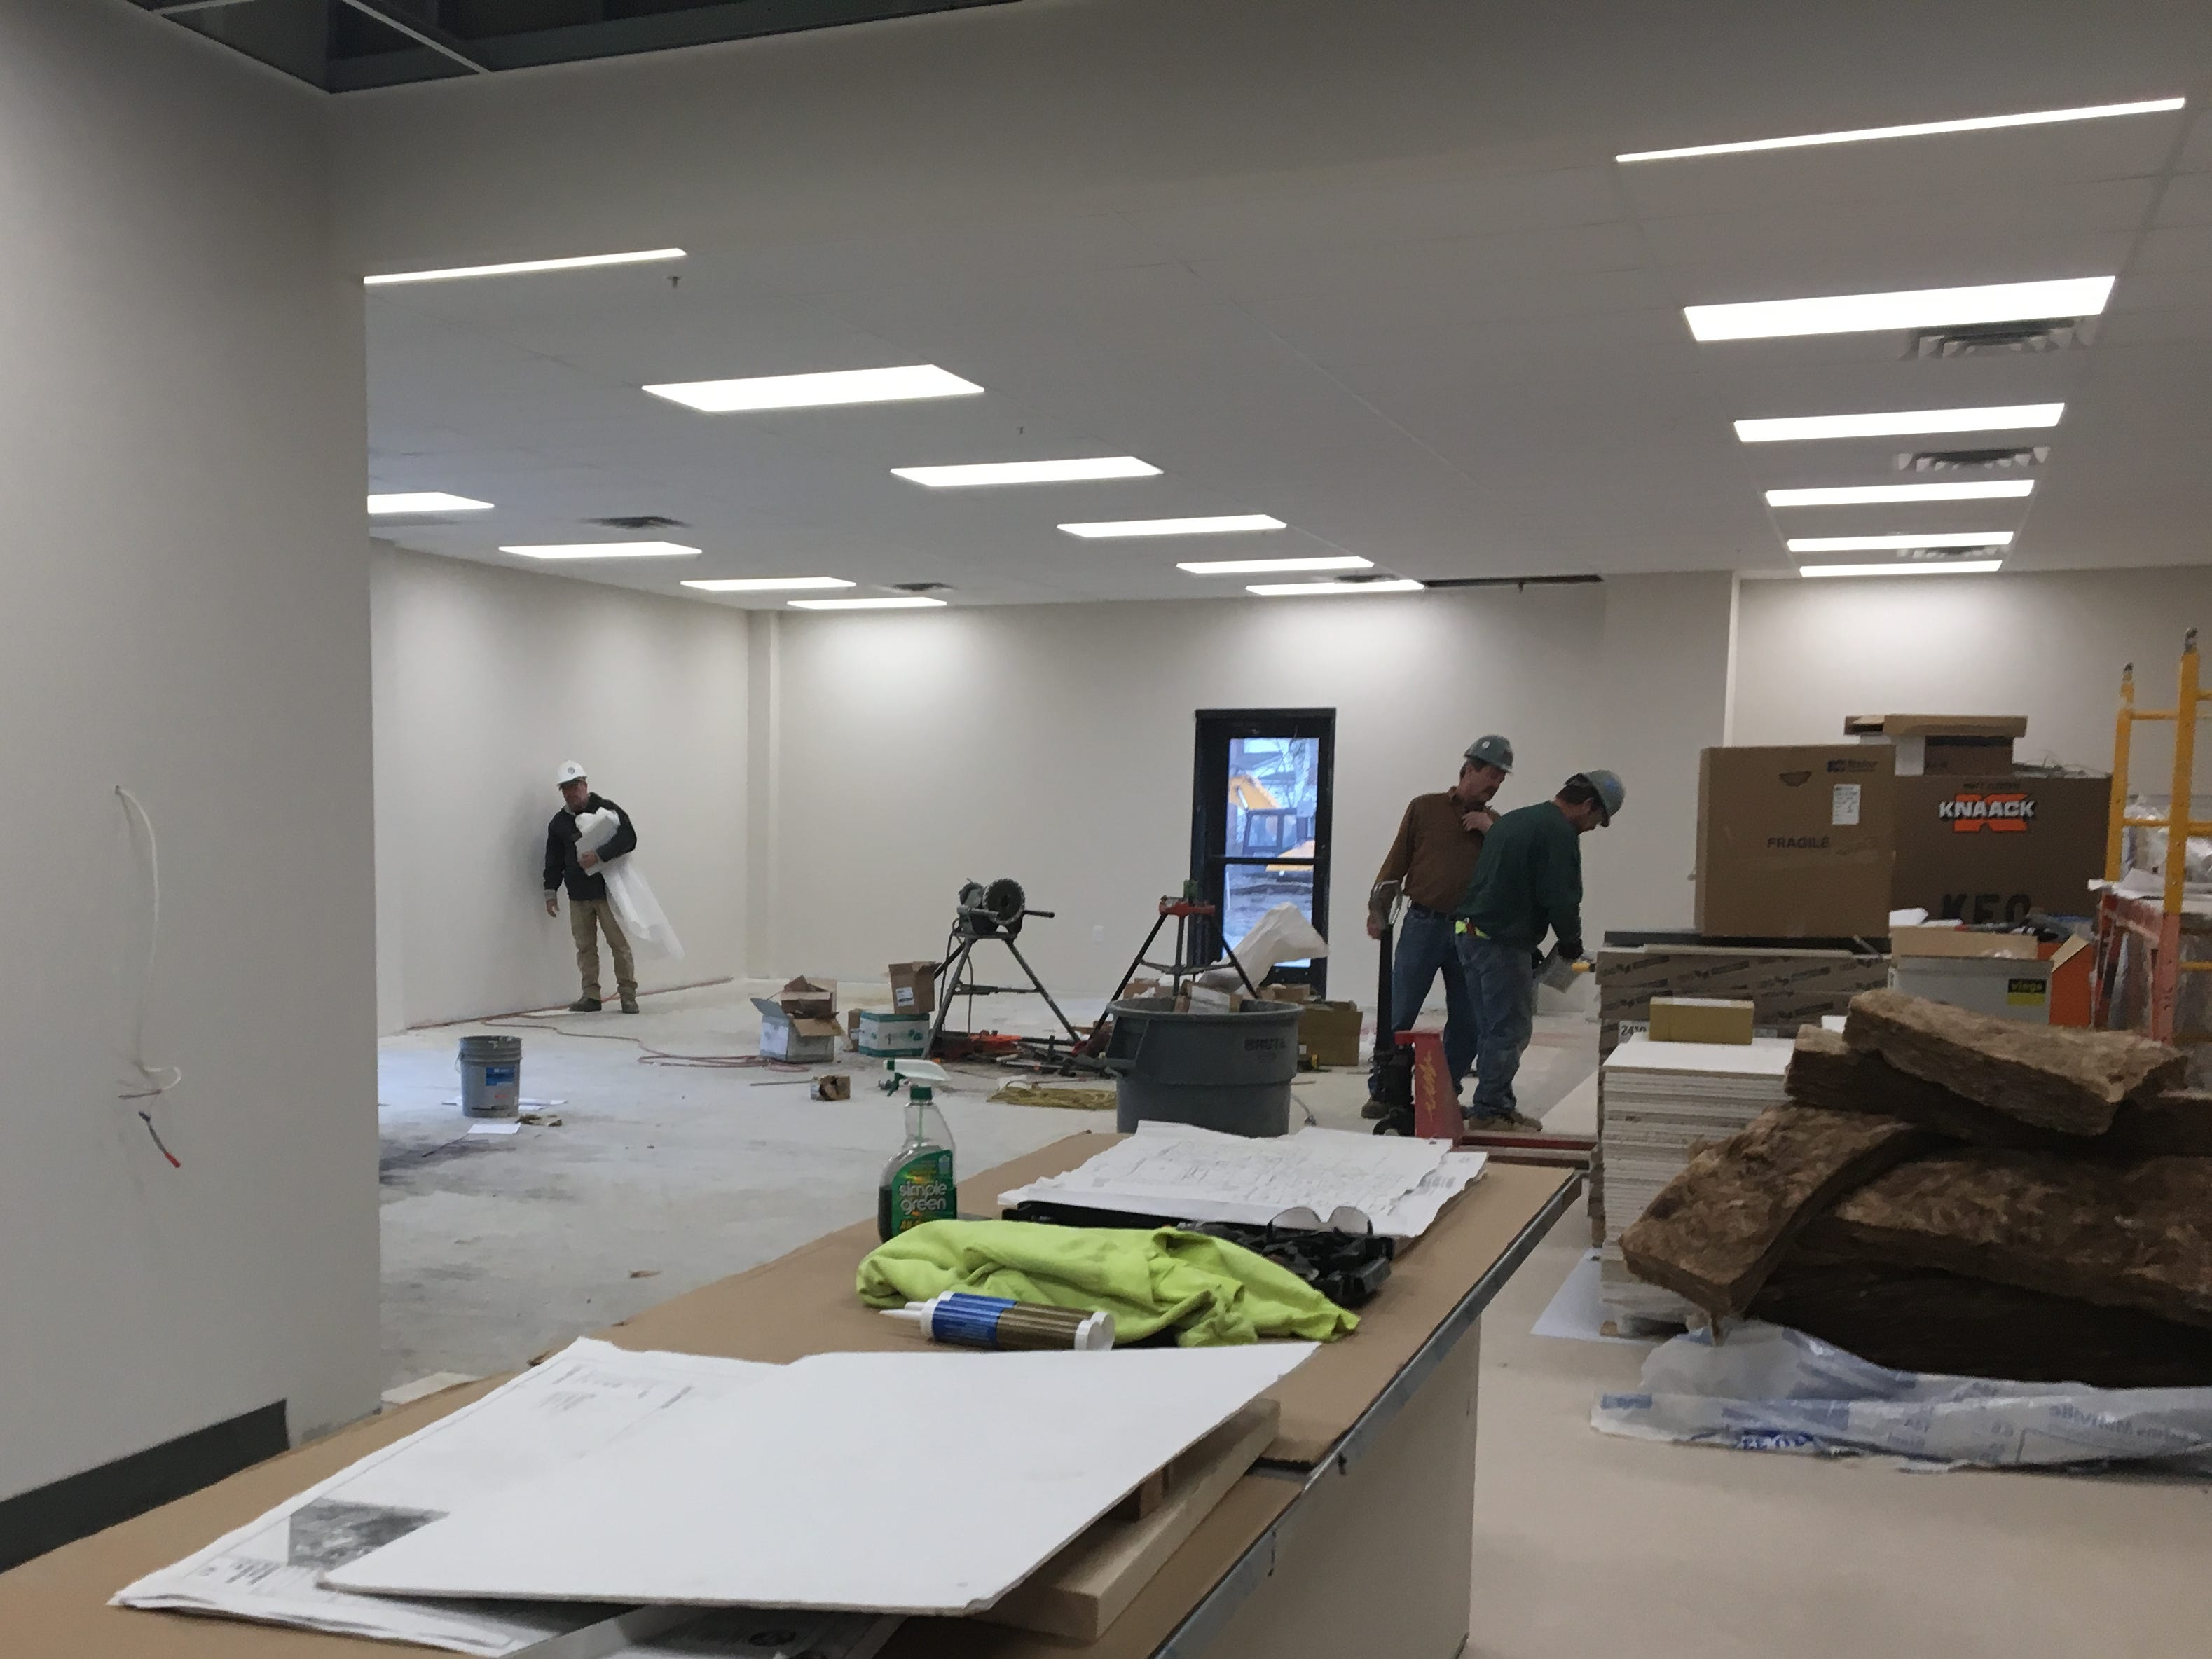 Work continues on the cafeteria. Opening later in December 2018, Project 180 residential treatment facility involved the renovation of Pleasure Isle recreation complex in Erlanger.